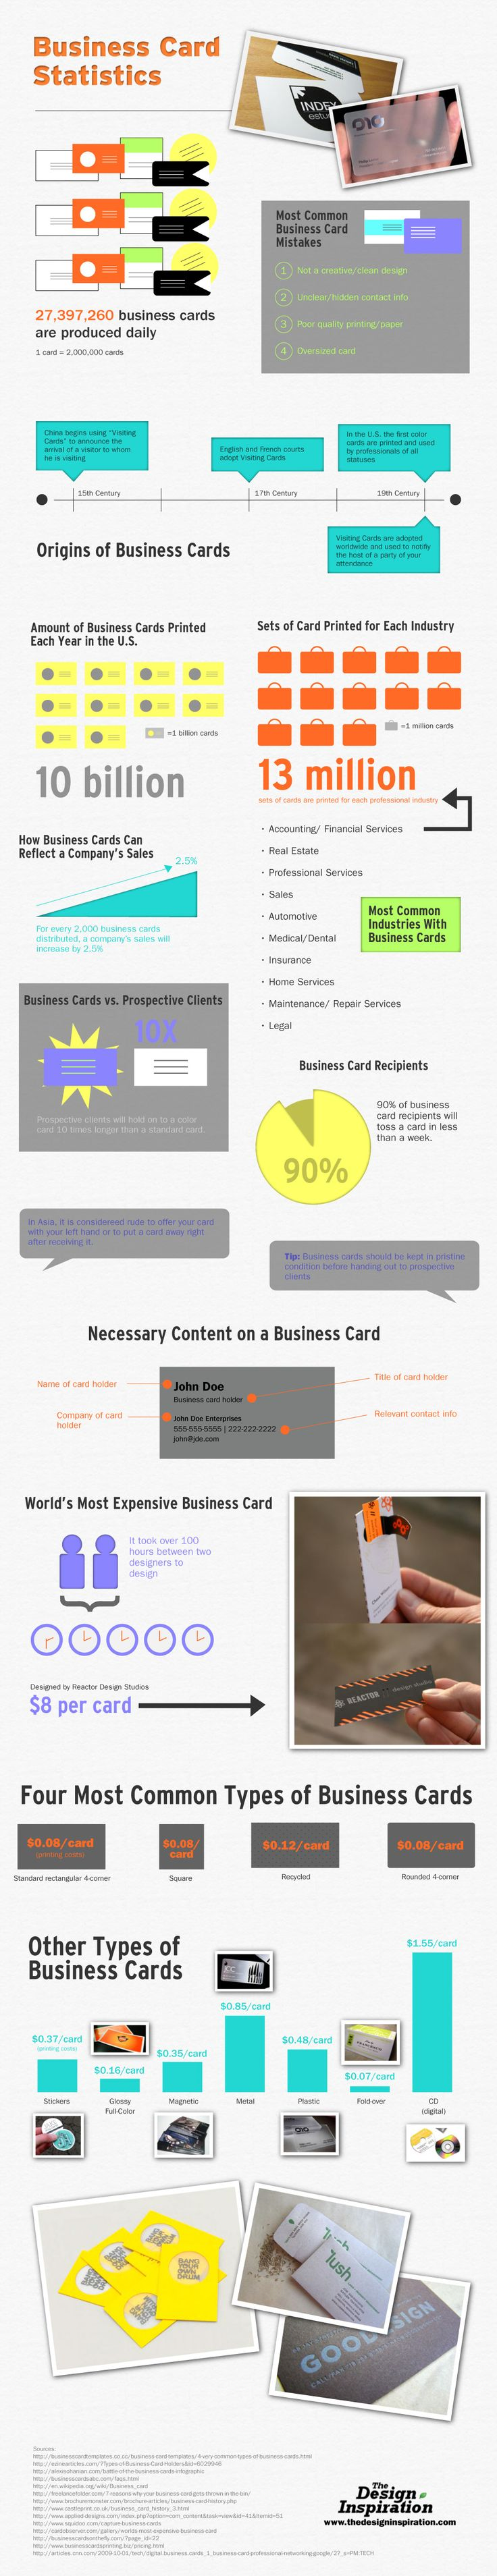 14 best Business Card InfoGraphics images on Pinterest | Business ...